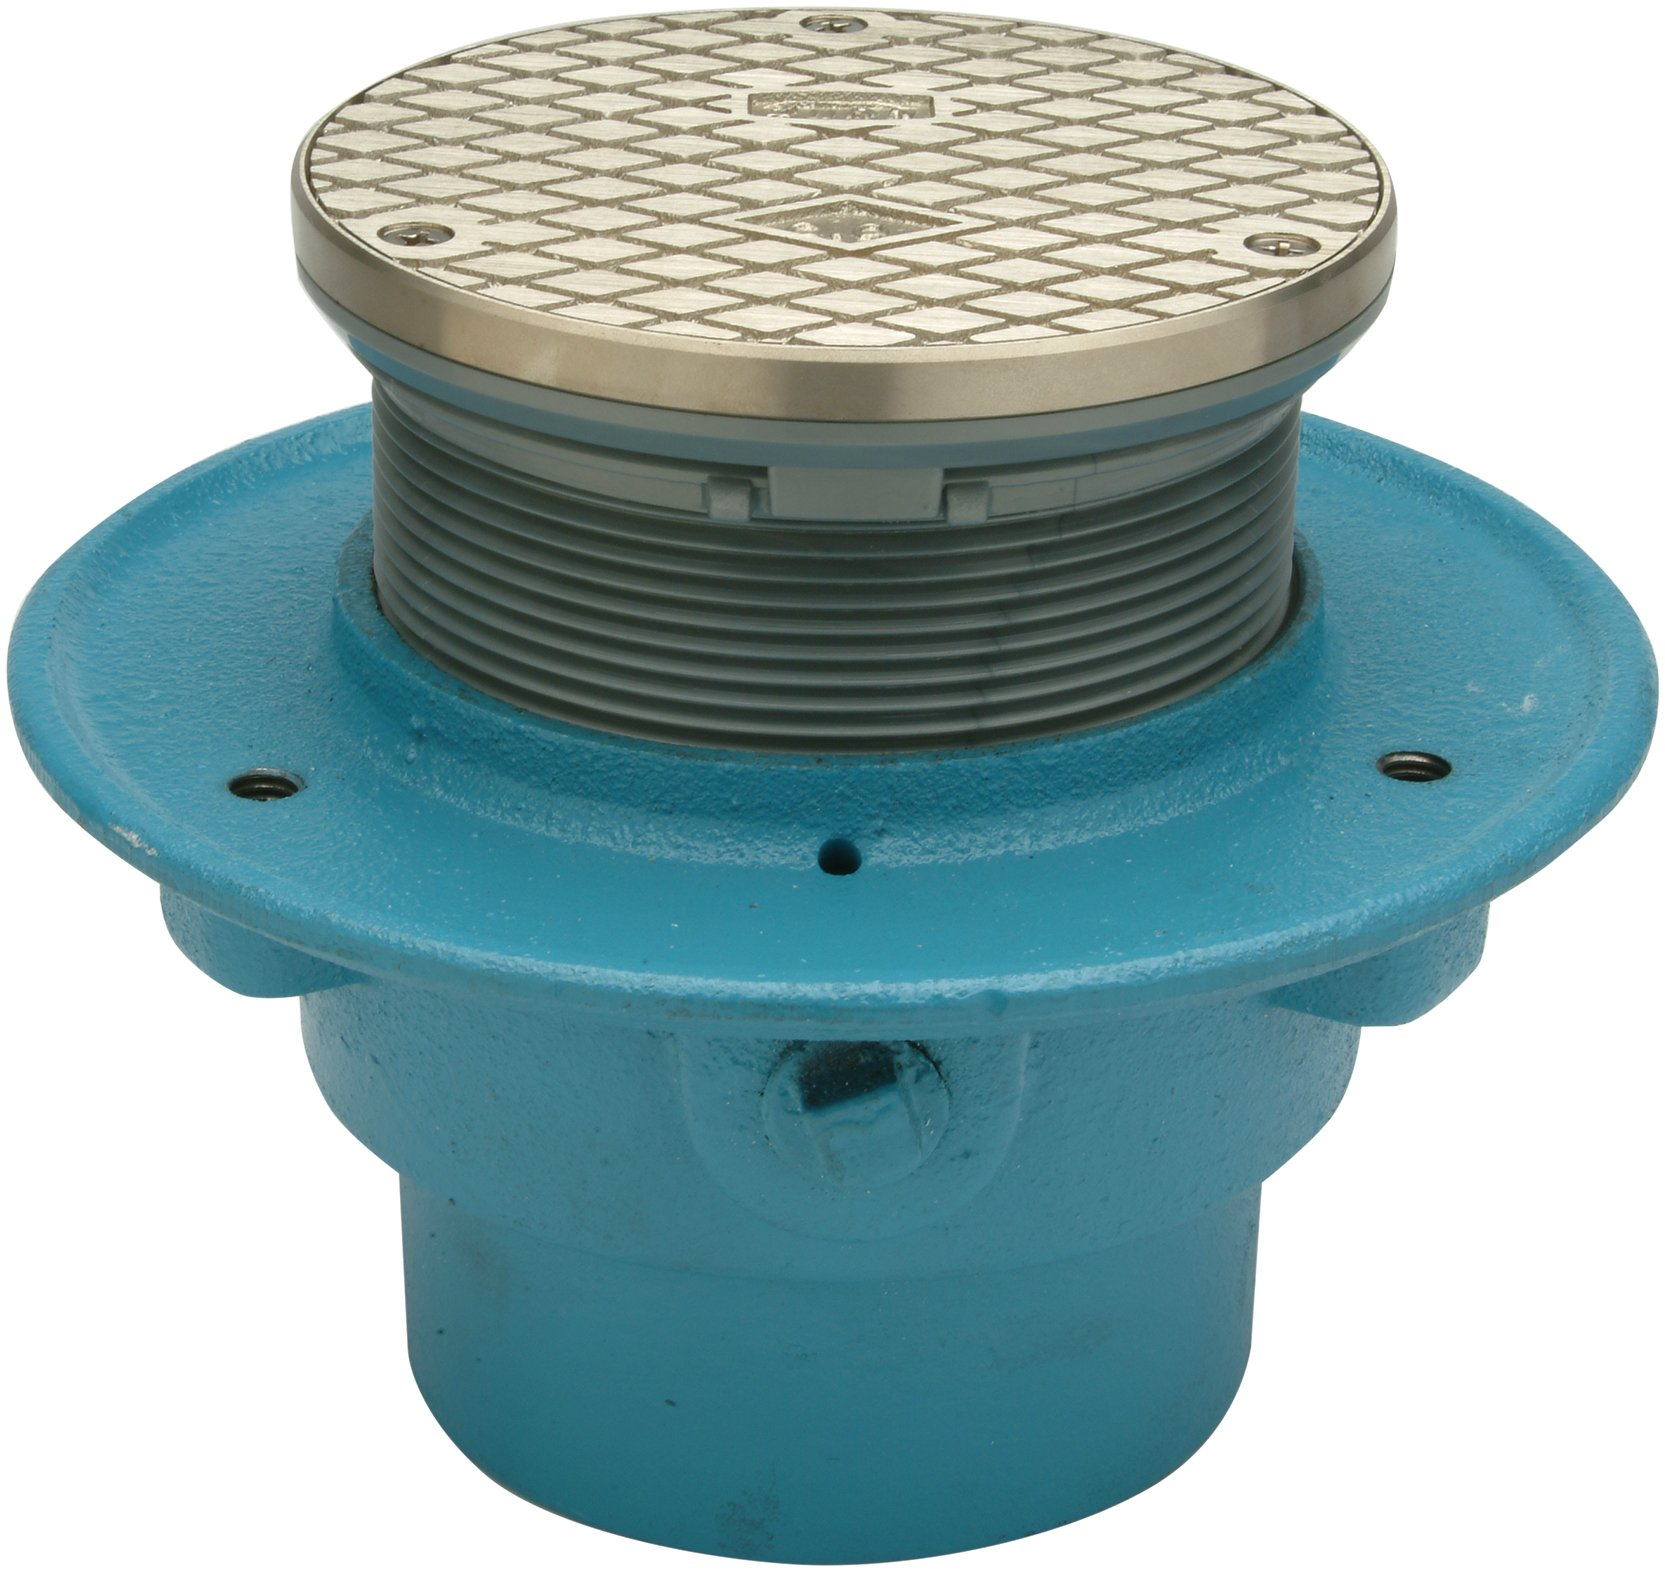 Zurn CR05NIP3S-C PVC Cleanout with 5'' Round Nickel Bronze Top and Clamping Collar, 3'' by Zurn